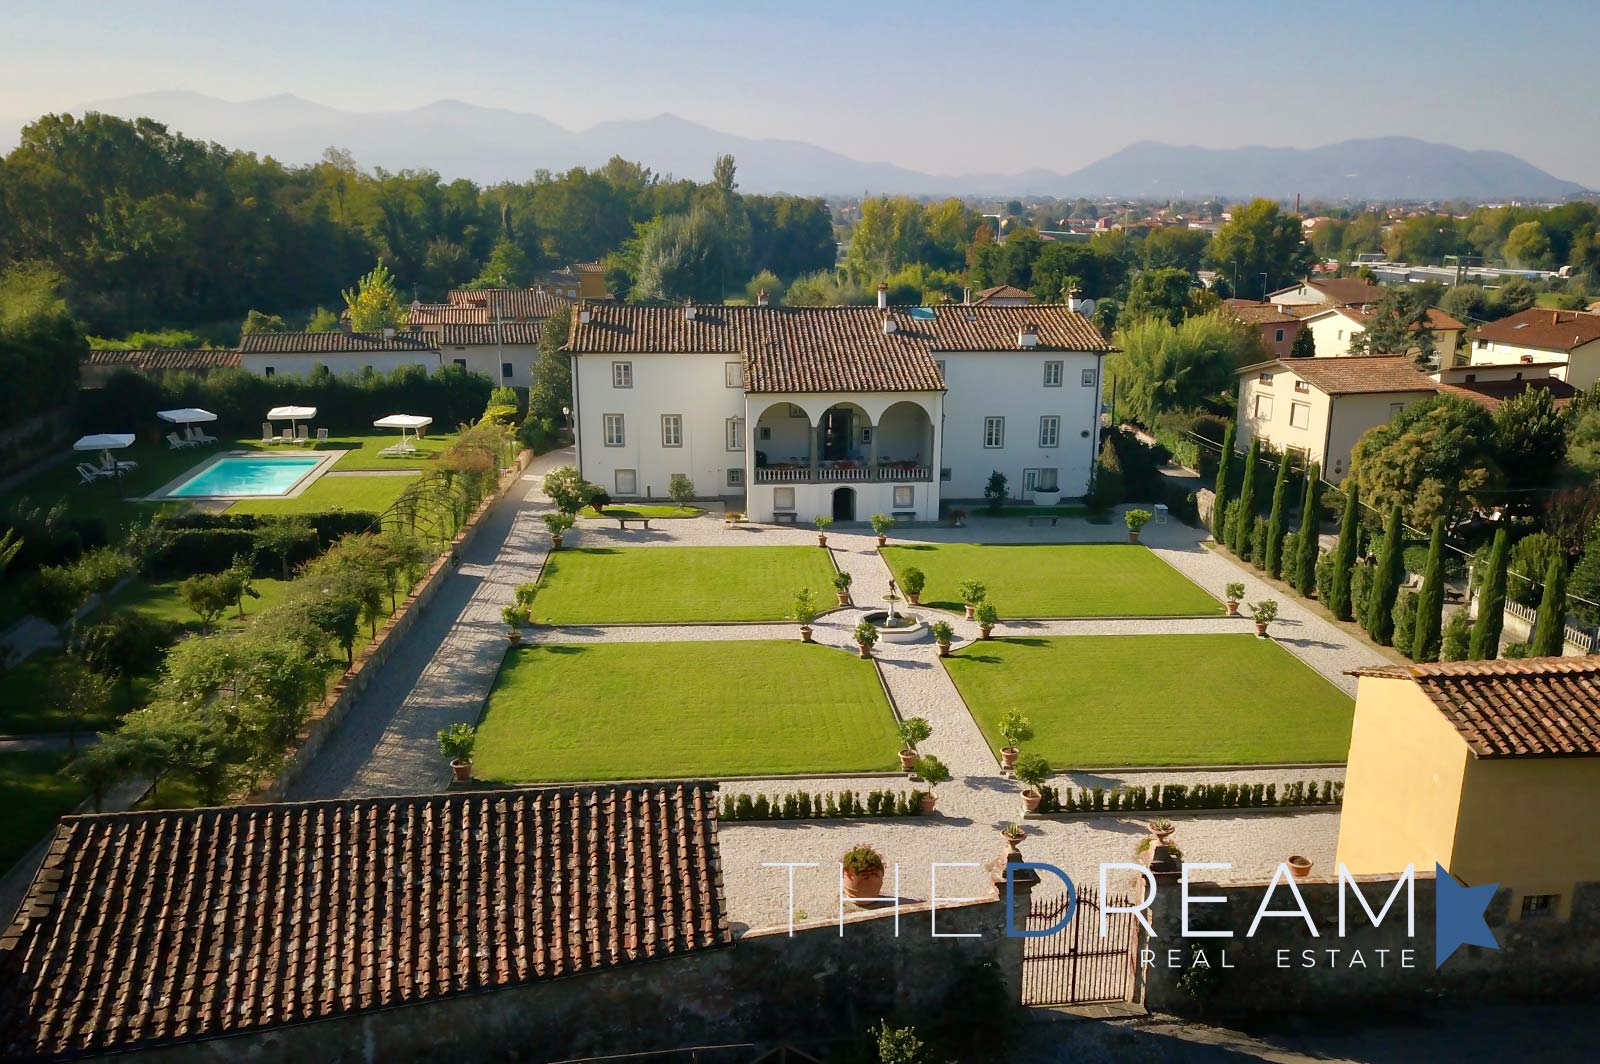 Villa for rent in Lucca_villa in affitto a Lucca_F96B1